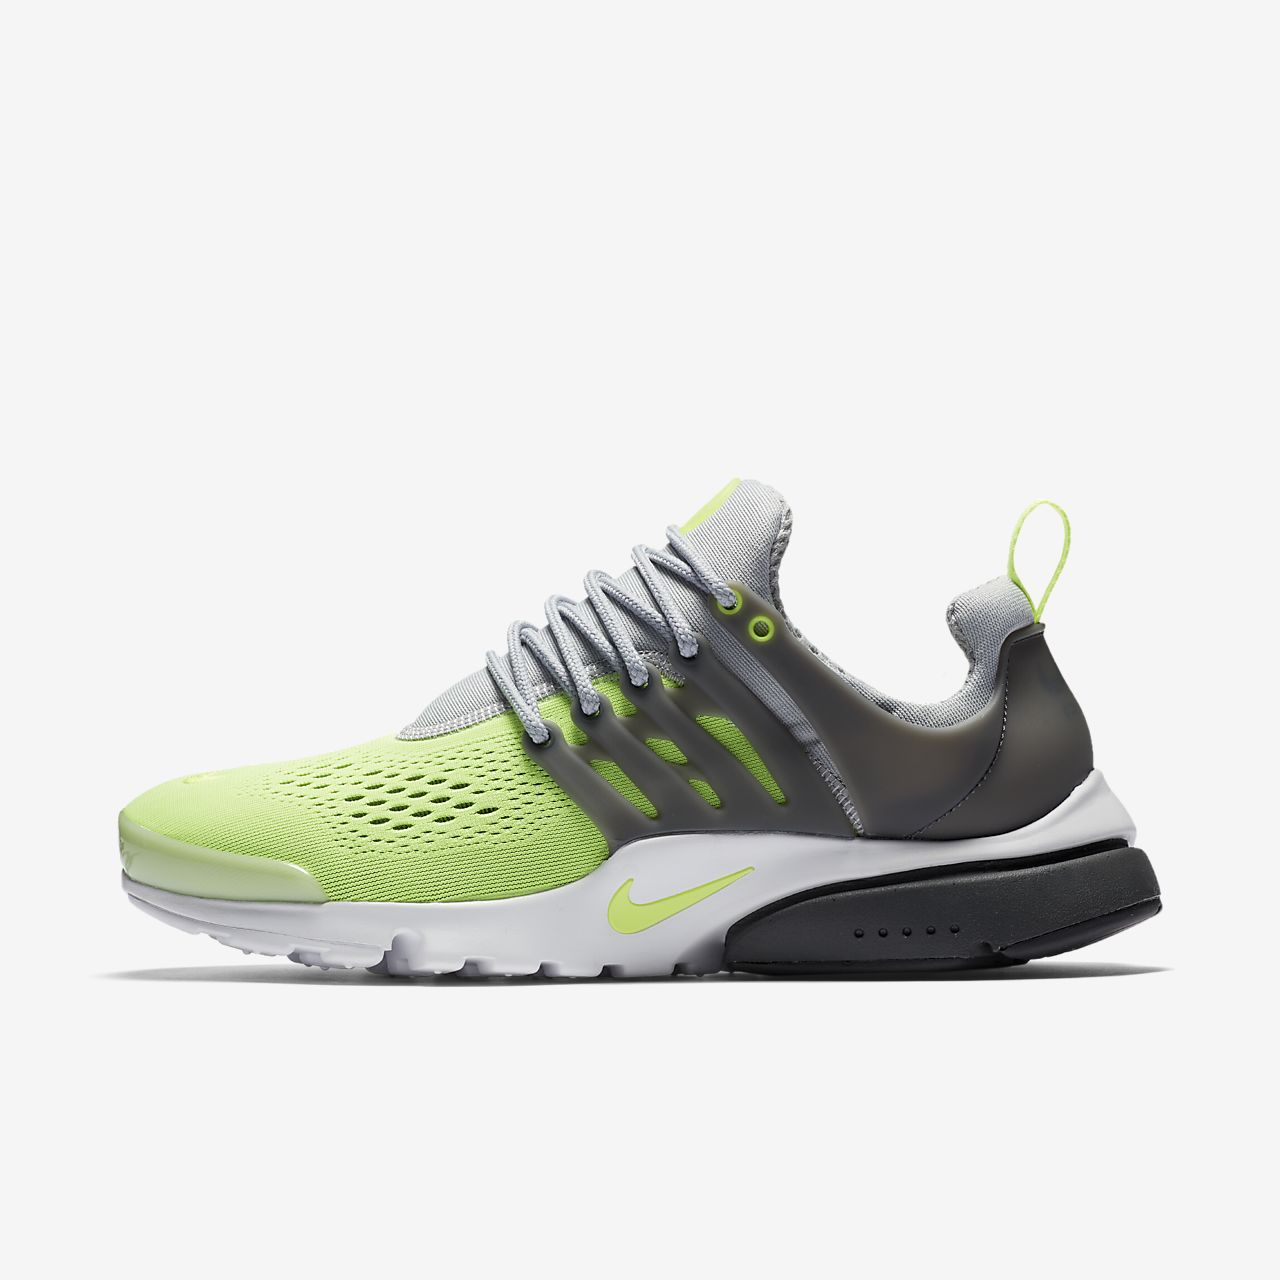 Nike Mens Shoes / White Volt Shoes Nike Fingertrap Max Free EH86Gc1